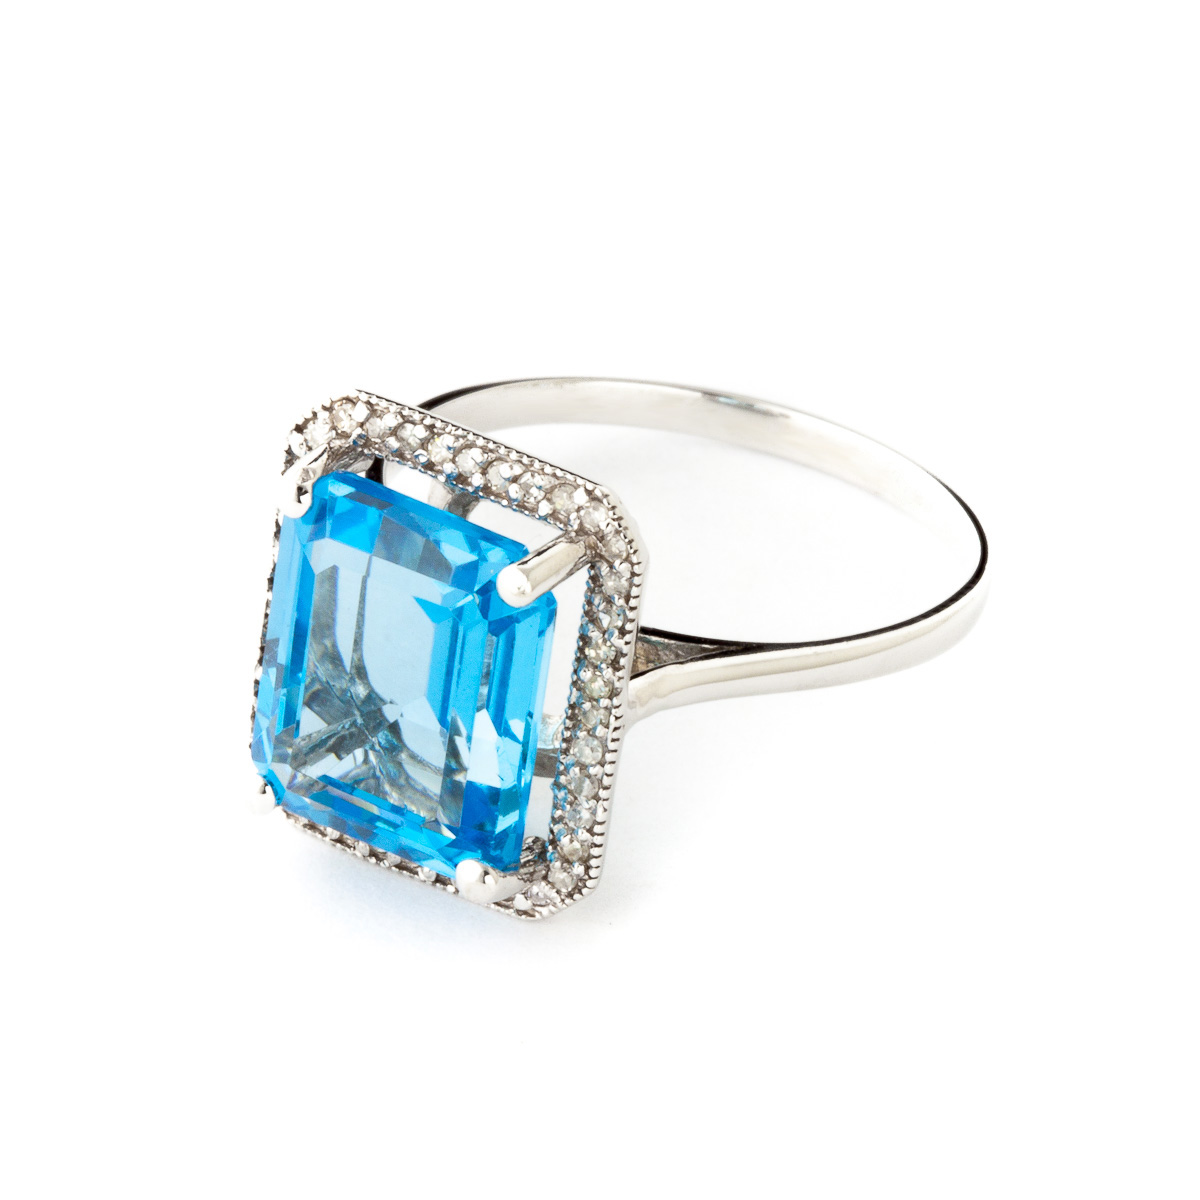 Blue Topaz and Diamond Halo Ring 7.6ct in 14K White Gold